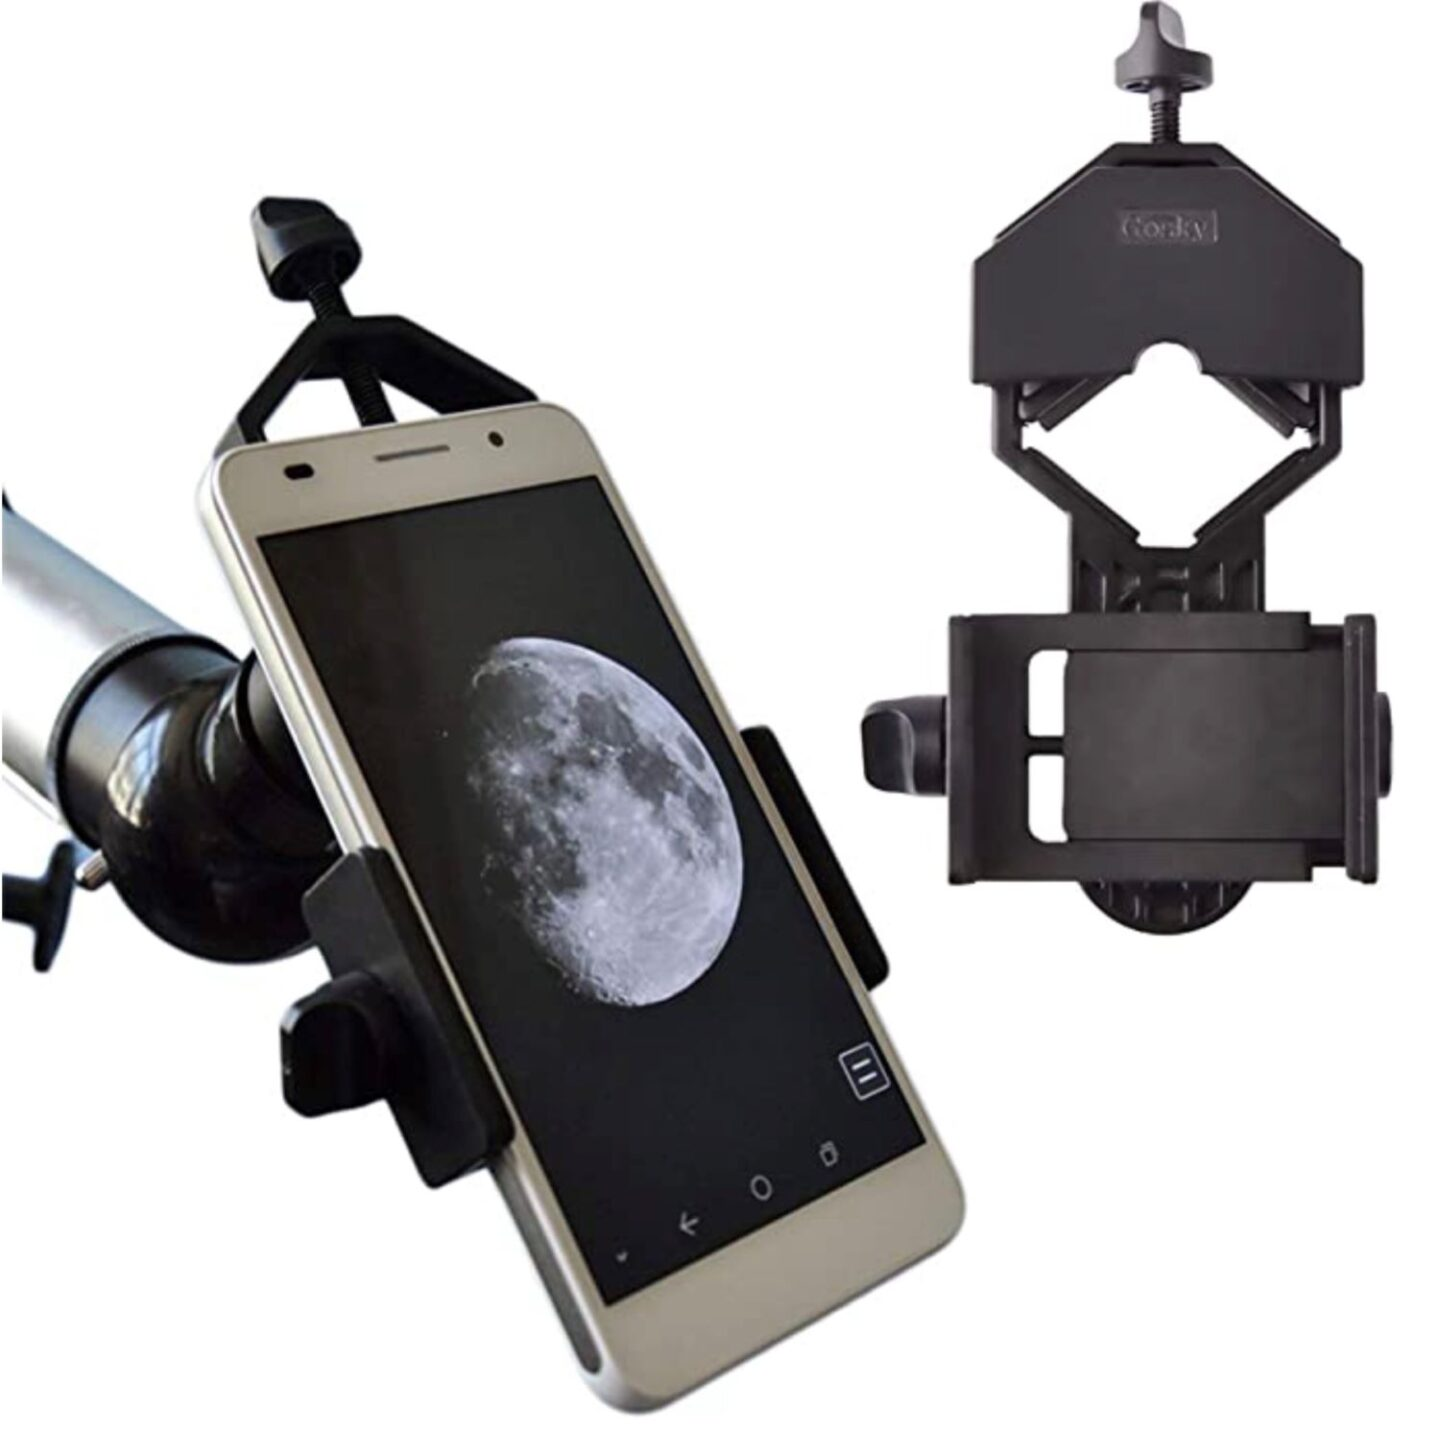 cell phon adapter for spotting scope